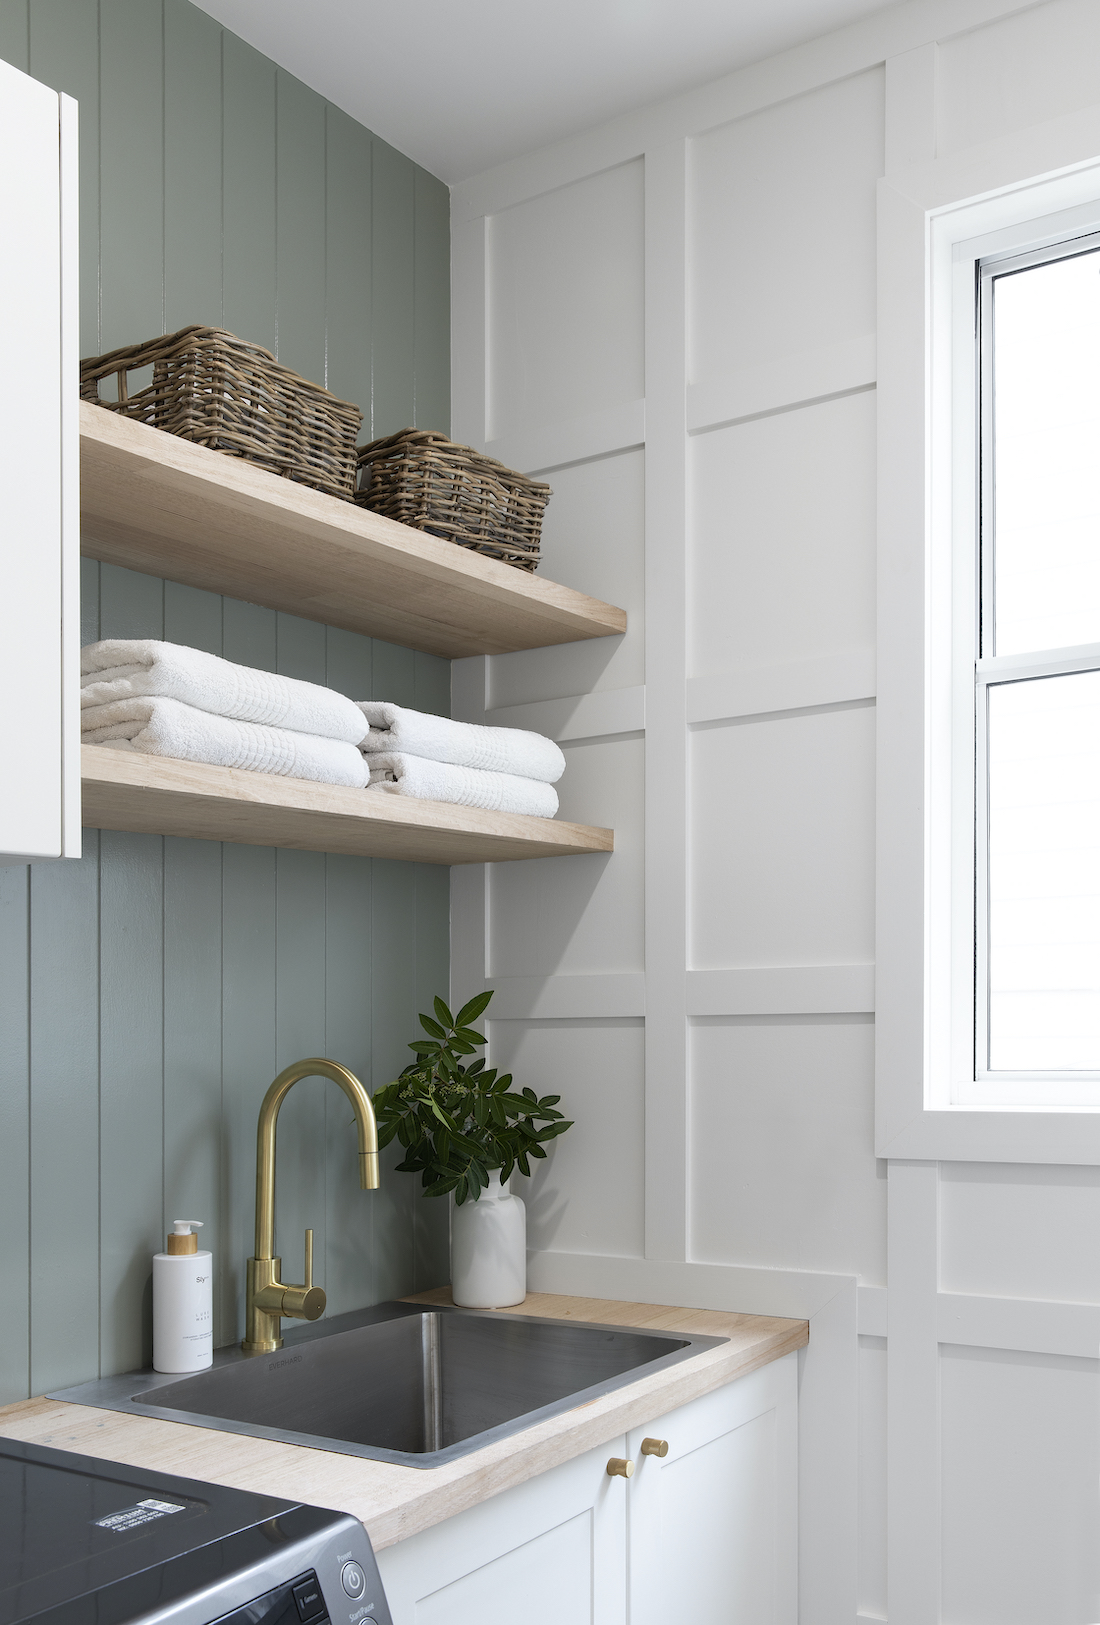 Green panelled wall in laundry with open shelving